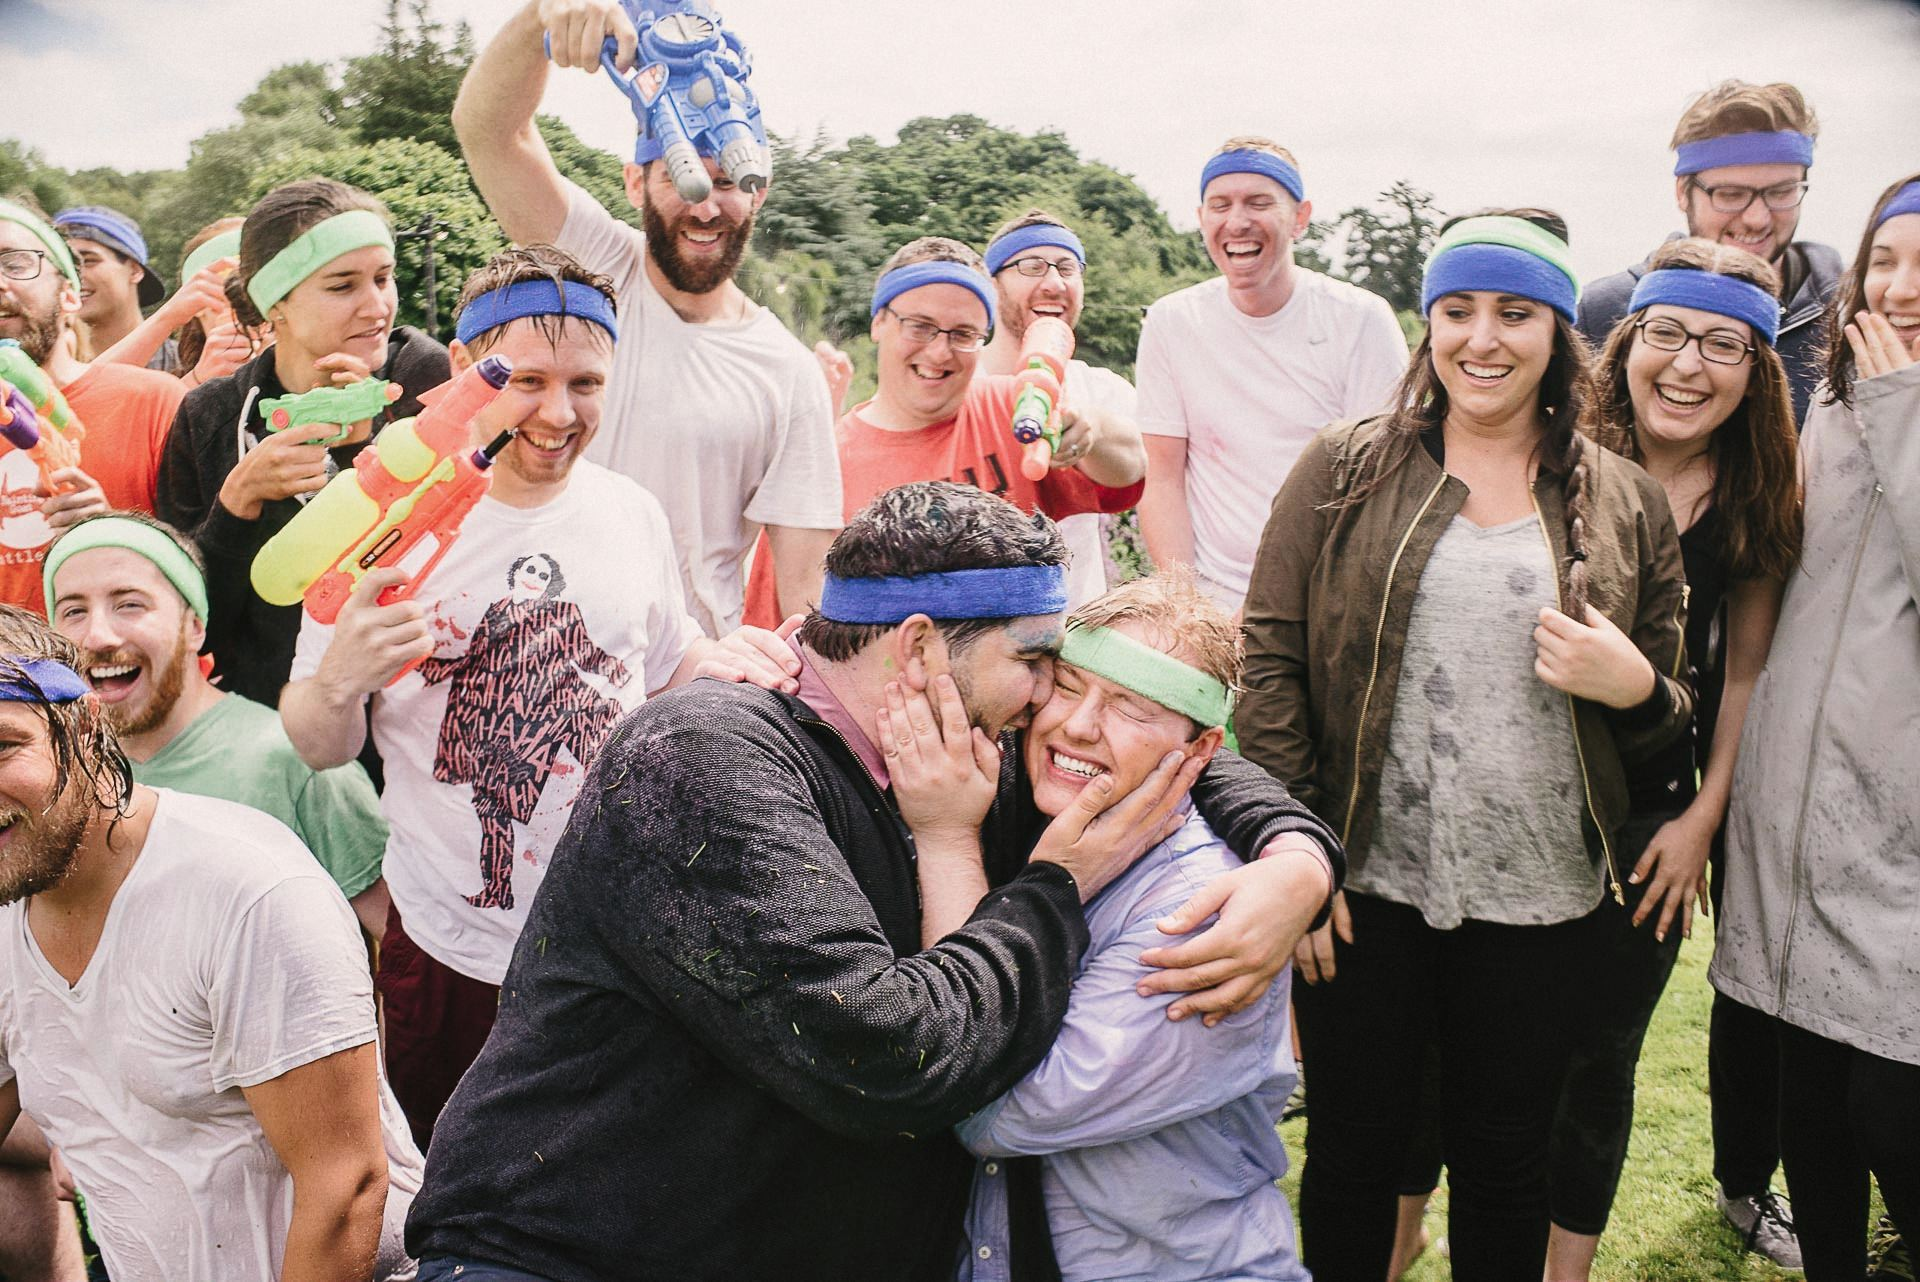 pre wedding water fight with guests